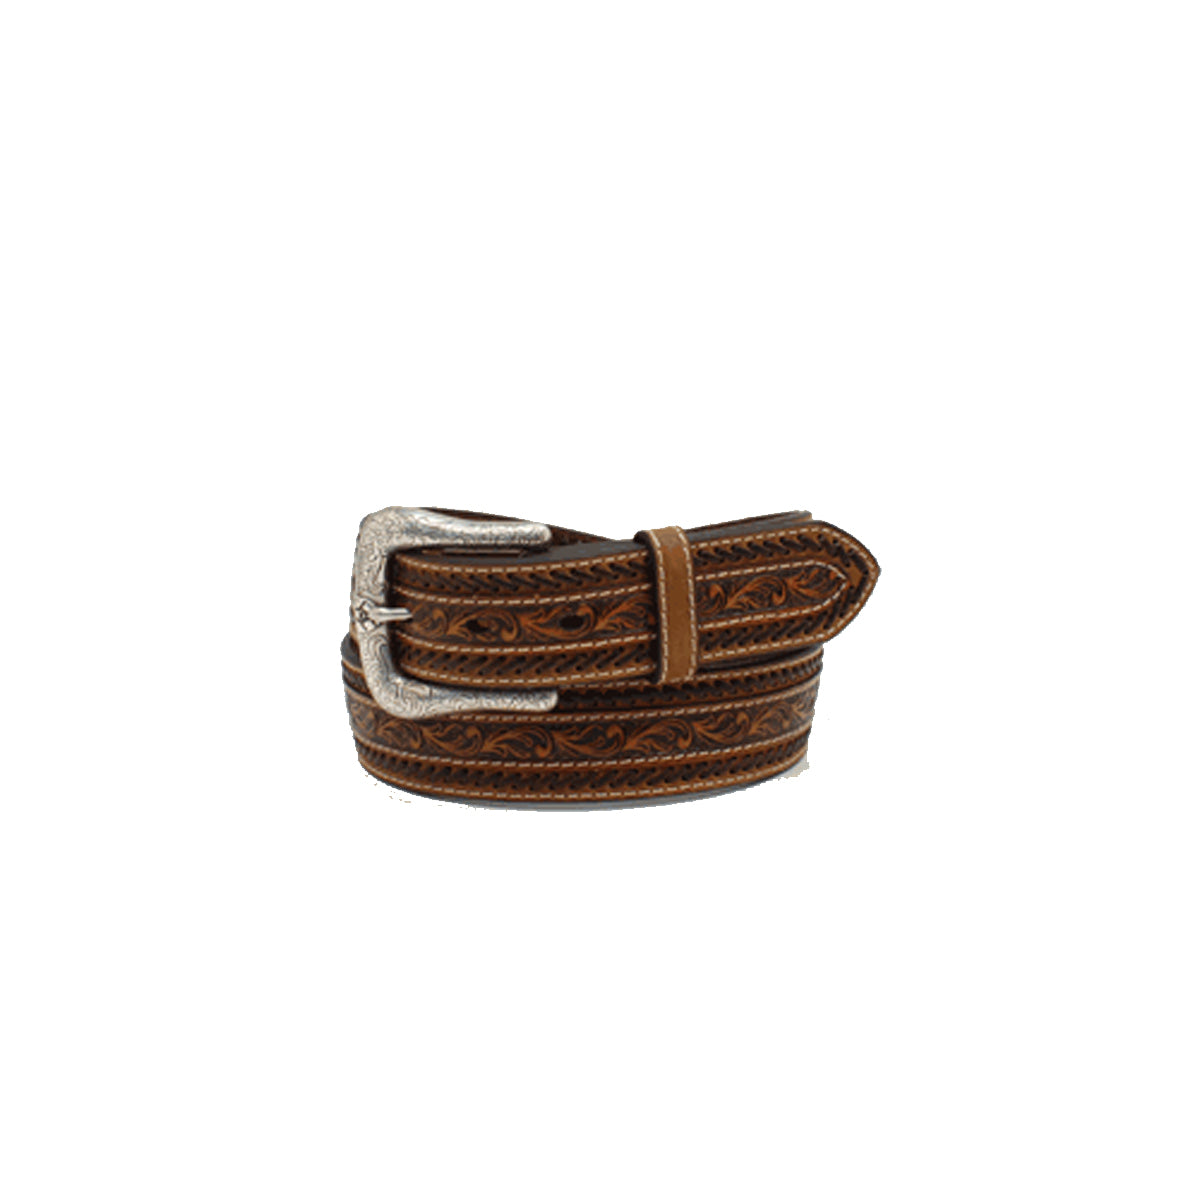 Ariat Men's Floral Tooled Leather Belt with Buck Lacing - Tan